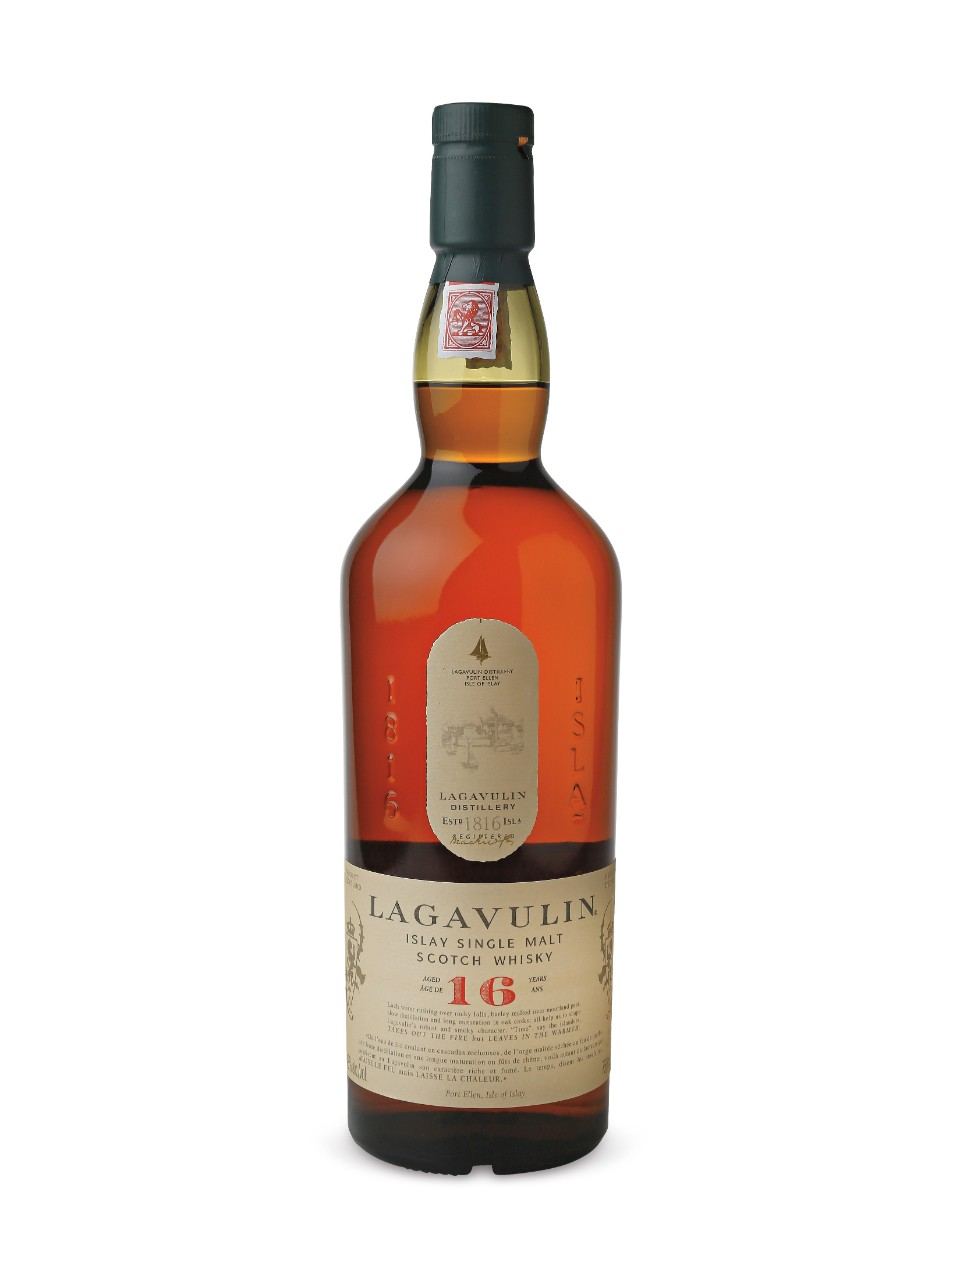 Image for Lagavulin 16 Year Old Islay Single Malt Scotch Whisky from LCBO